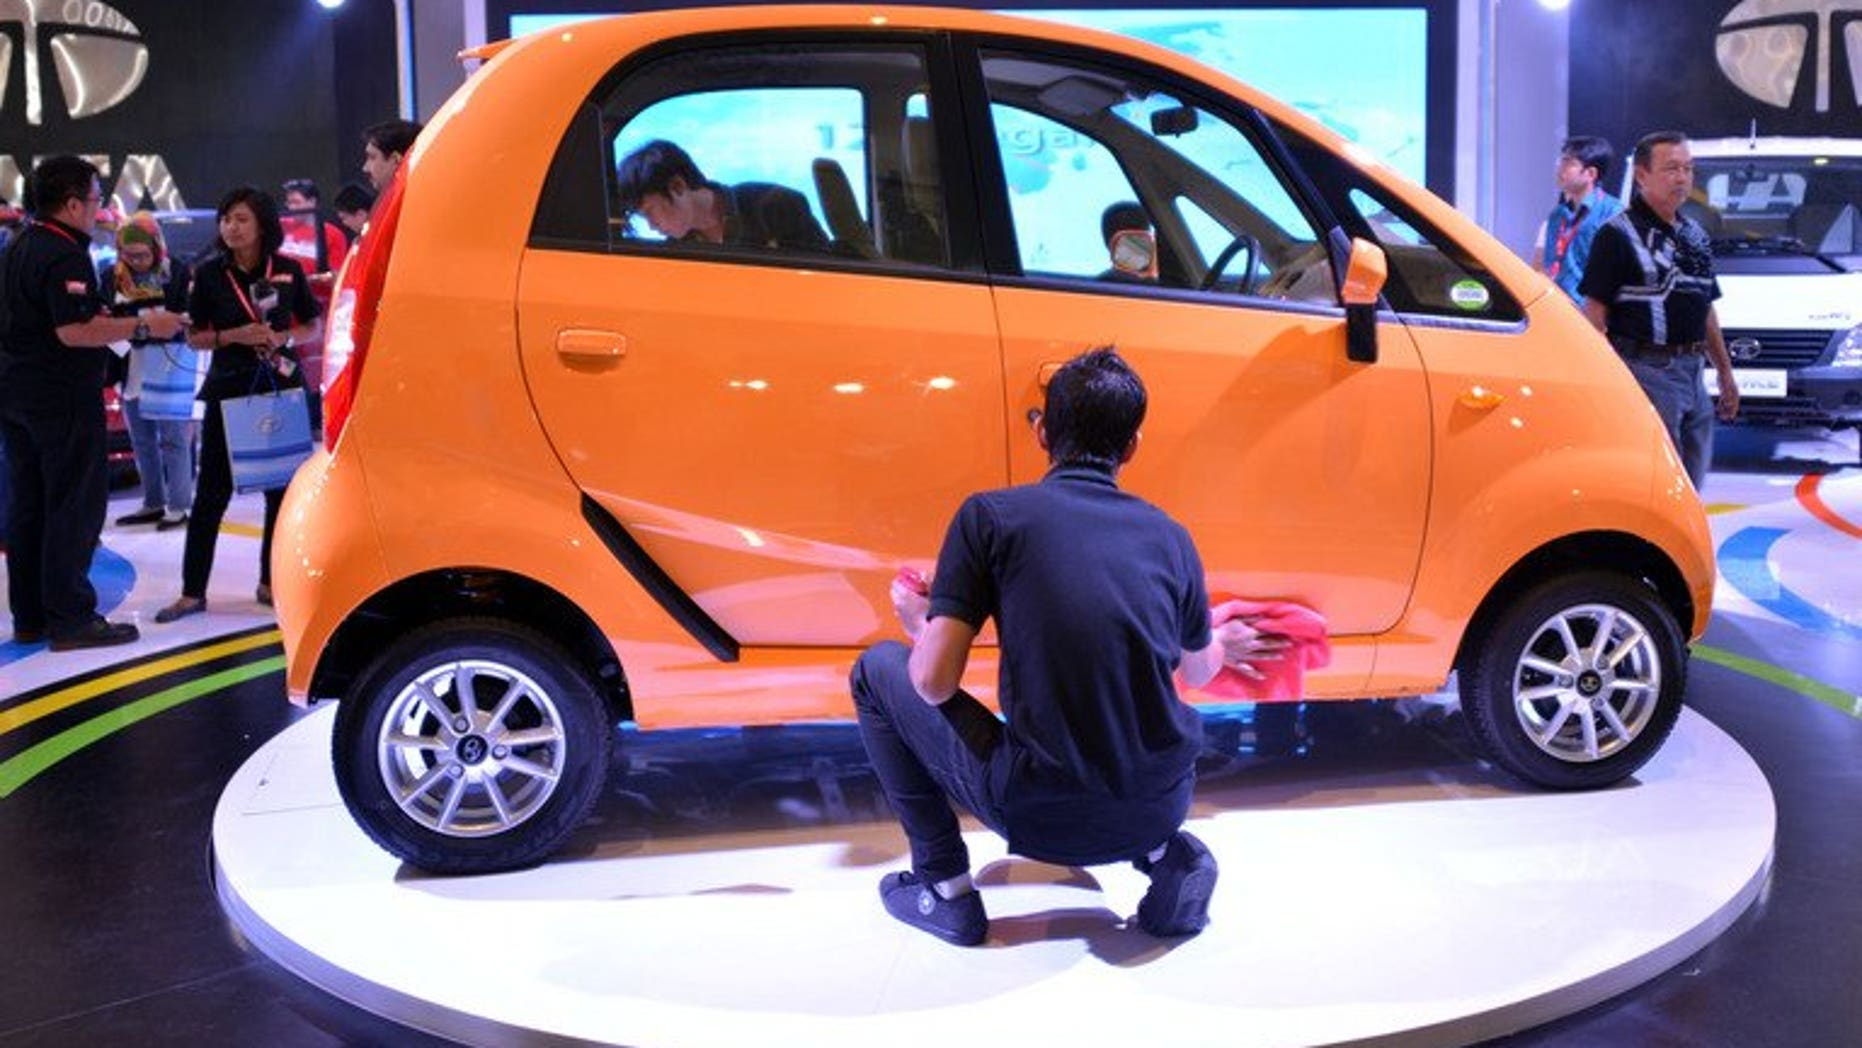 "A Nano car manufactured by Tata of India is displayed at the Indonesia International Motor Show 2012 in Jakarta. India's top vehicle maker Tata Motors says it plans to reposition the Nano as a ""smart city car"" after its marketing pitch as the world's cheapest auto resulted in disappointing sales."